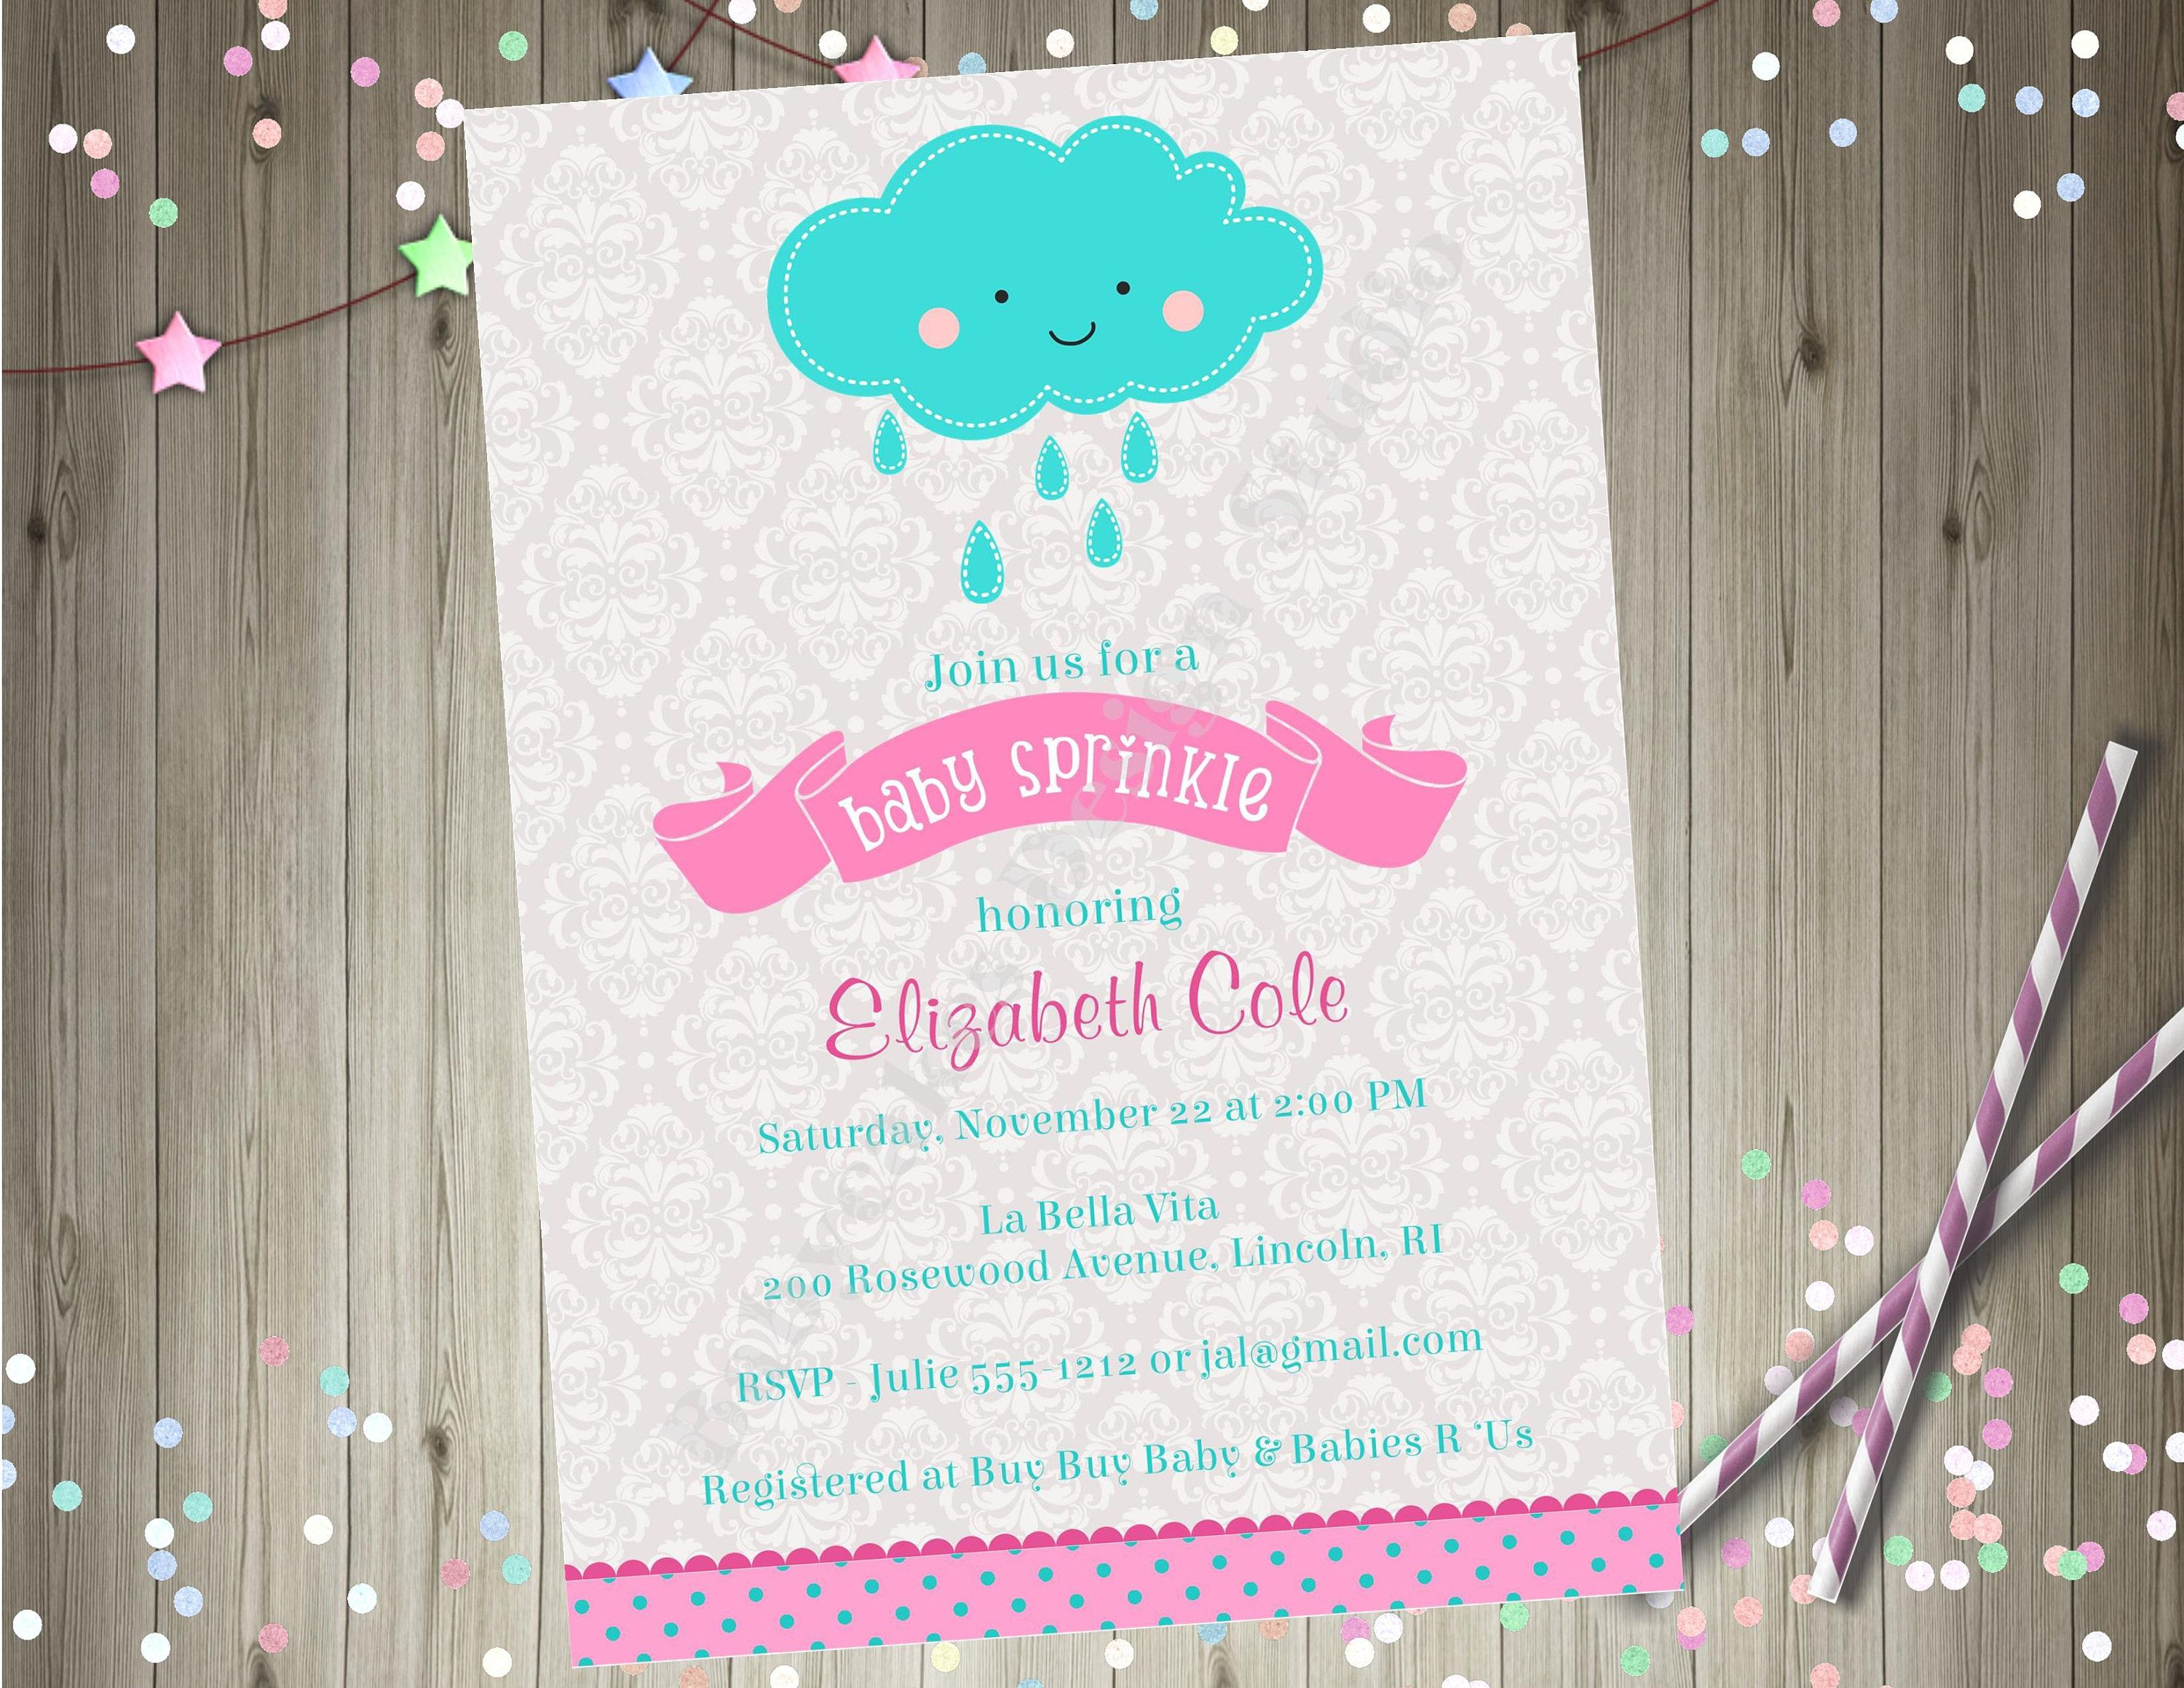 Baby Sprinkle Invitation Baby Shower invitation invite rain cloud ...